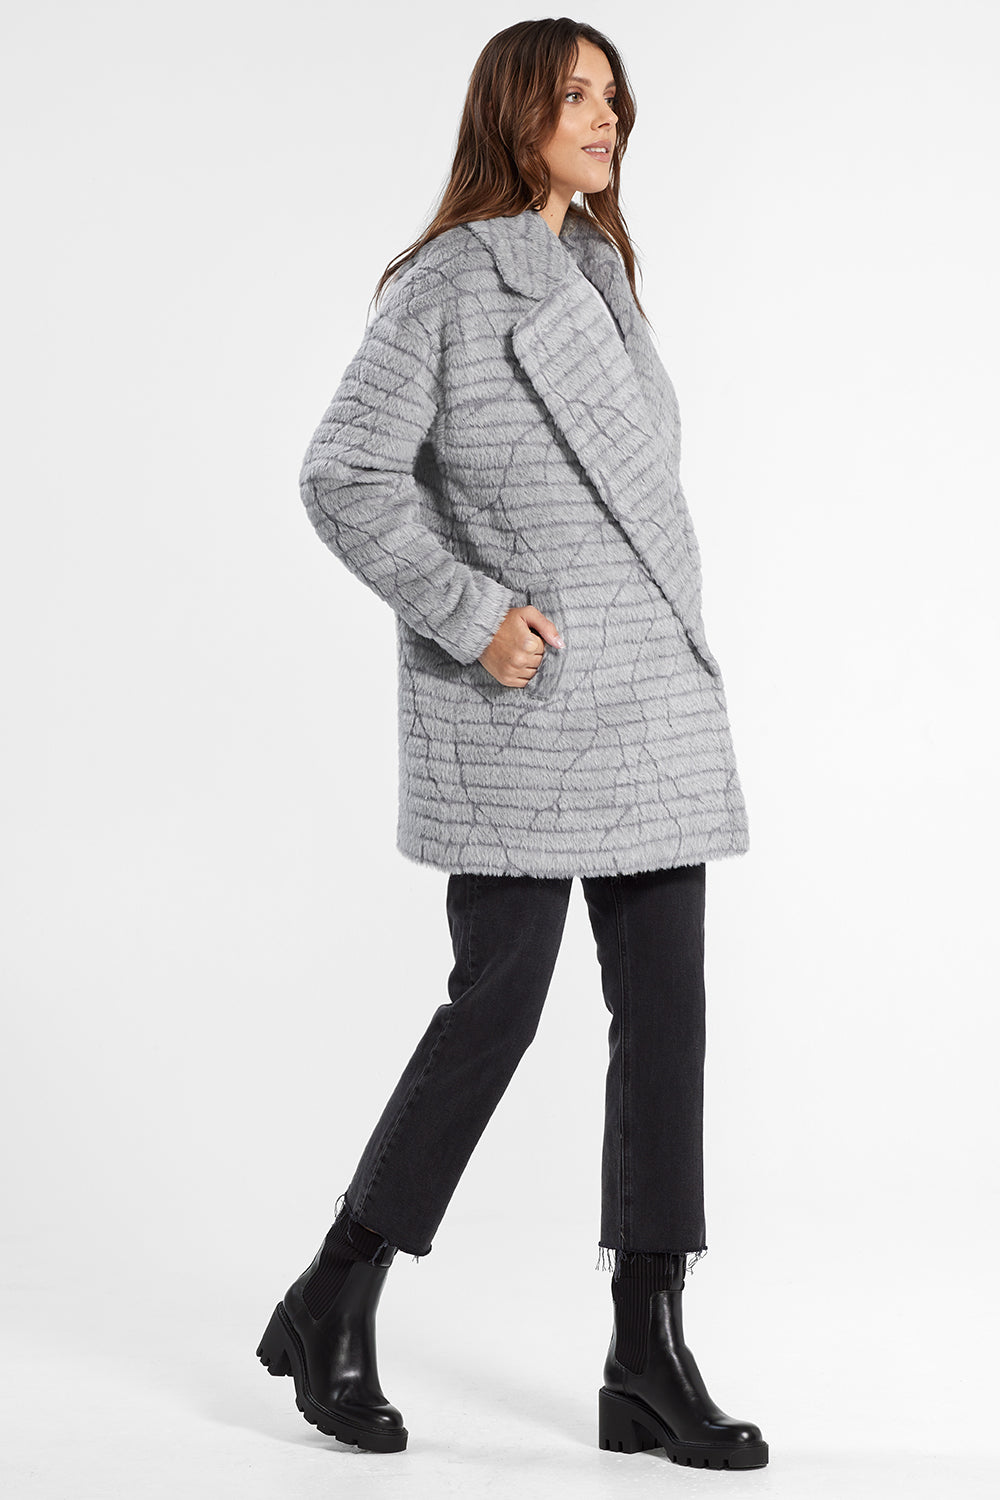 Sentaler Suri Alpaca Mid Length Oversized Notched Collar Coat featured in Suri Alpaca and available in Grey. Seen from side.